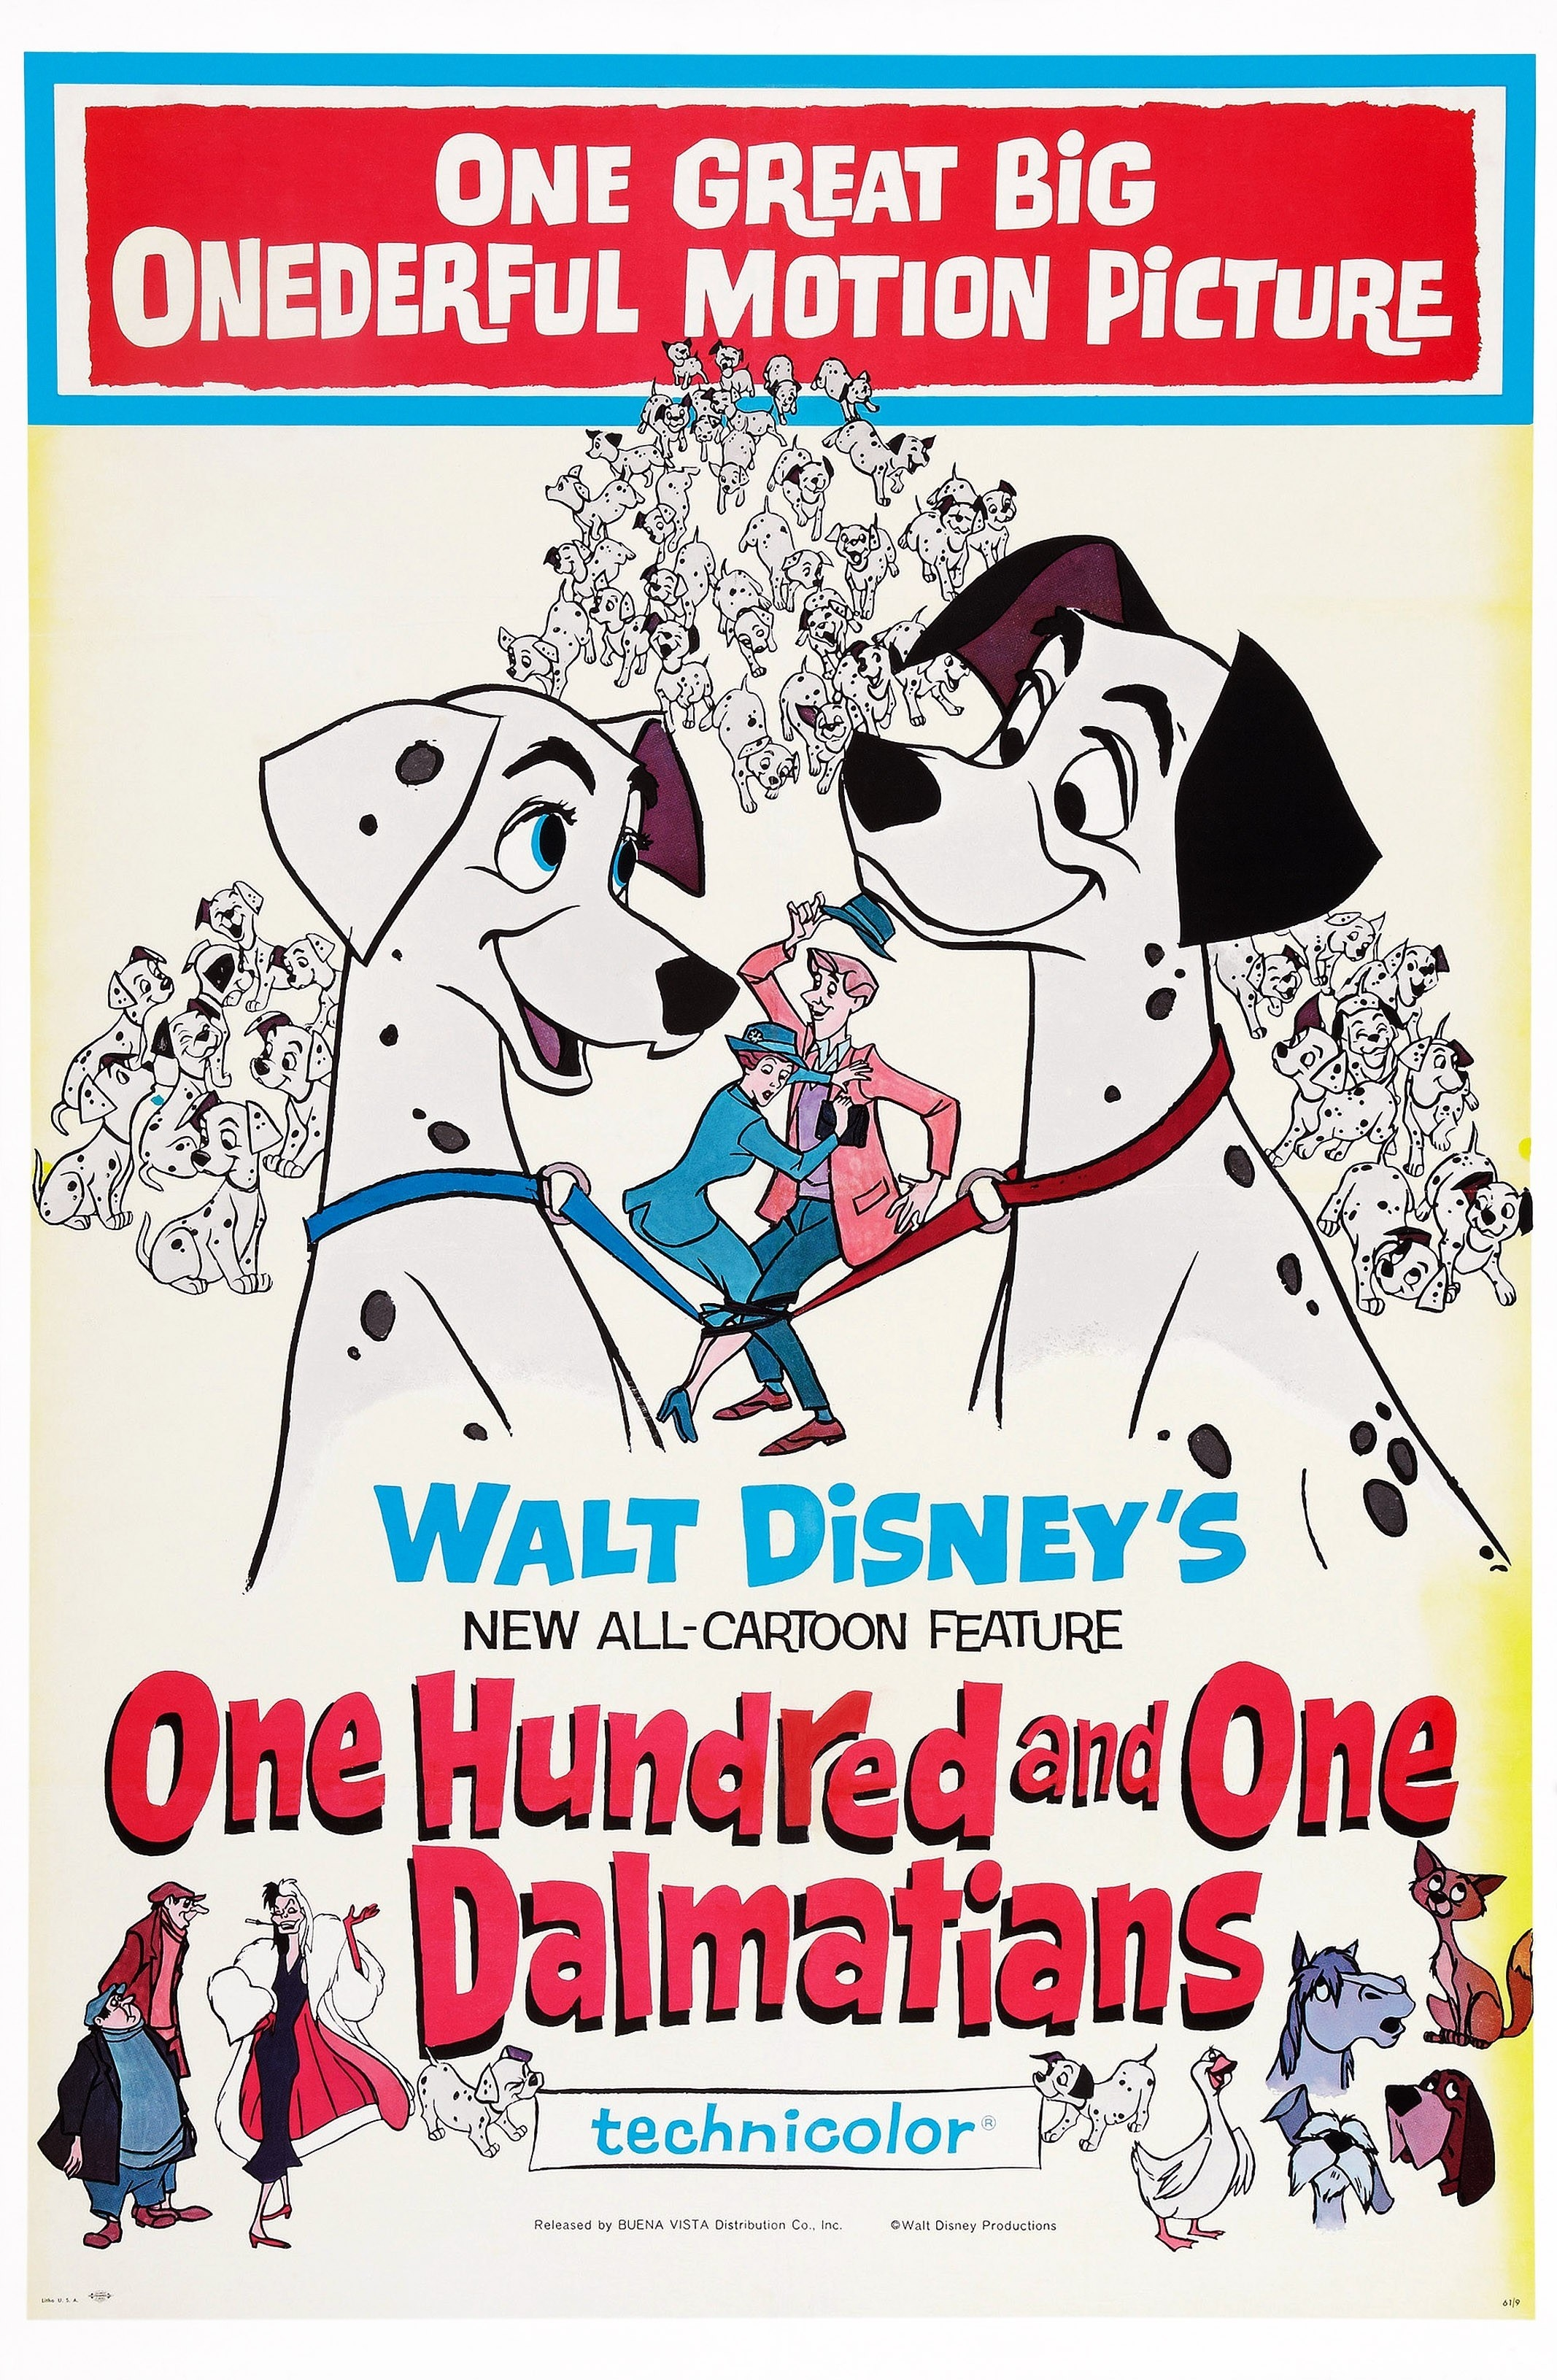 The original One Hundred and One Dalmatians movie preview